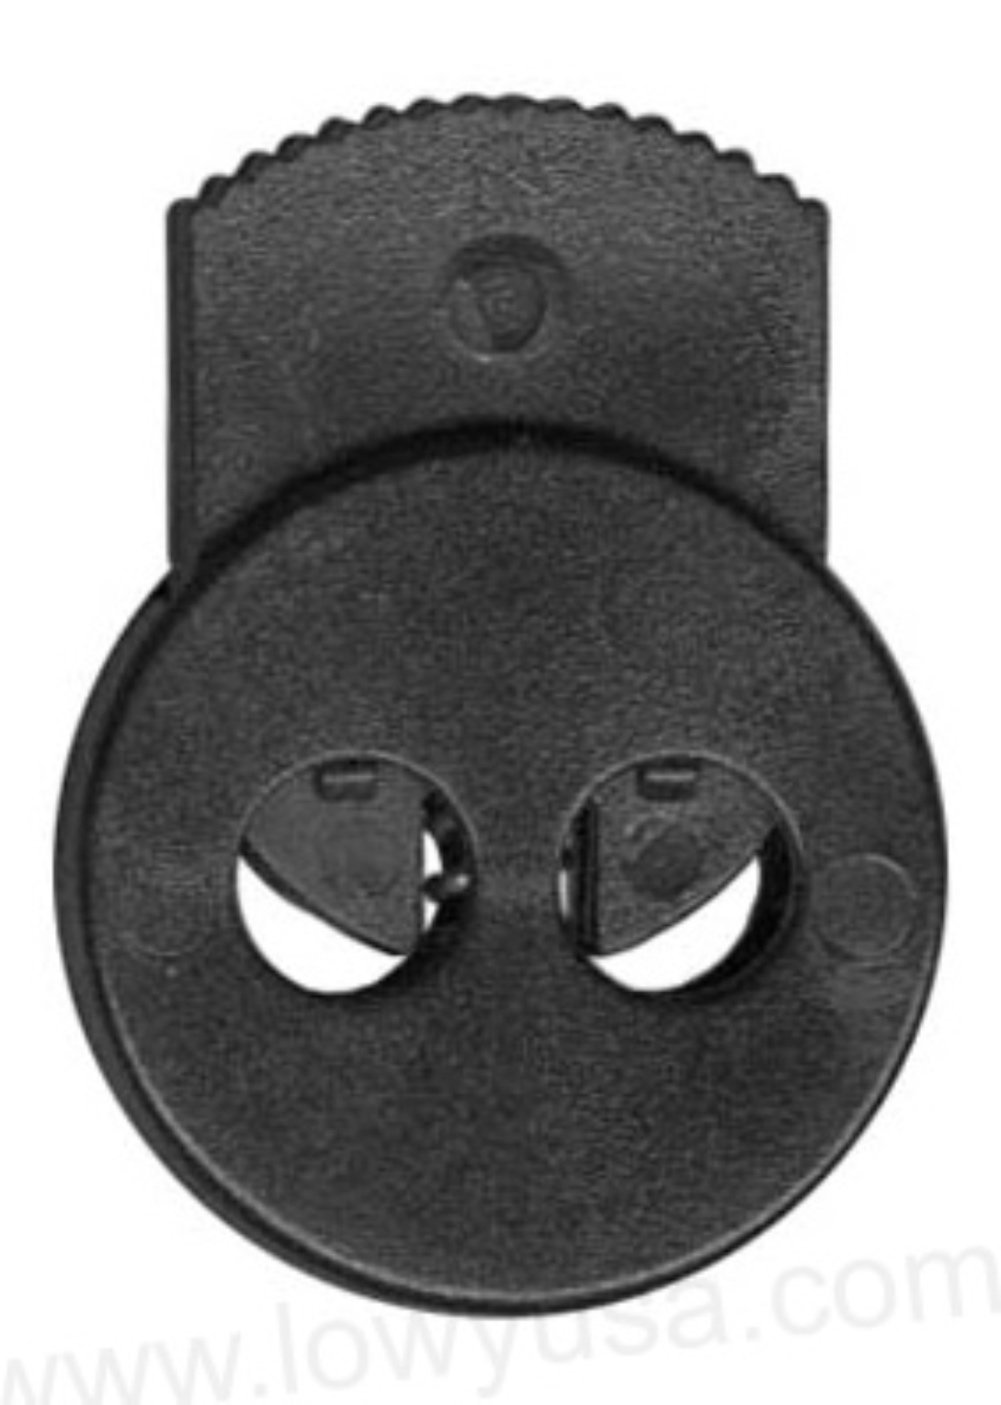 FMS Circle Dual Hold Lock - Dual Hole Cord Lock, Spring Stop, Toggle (6 Pack)(Black)